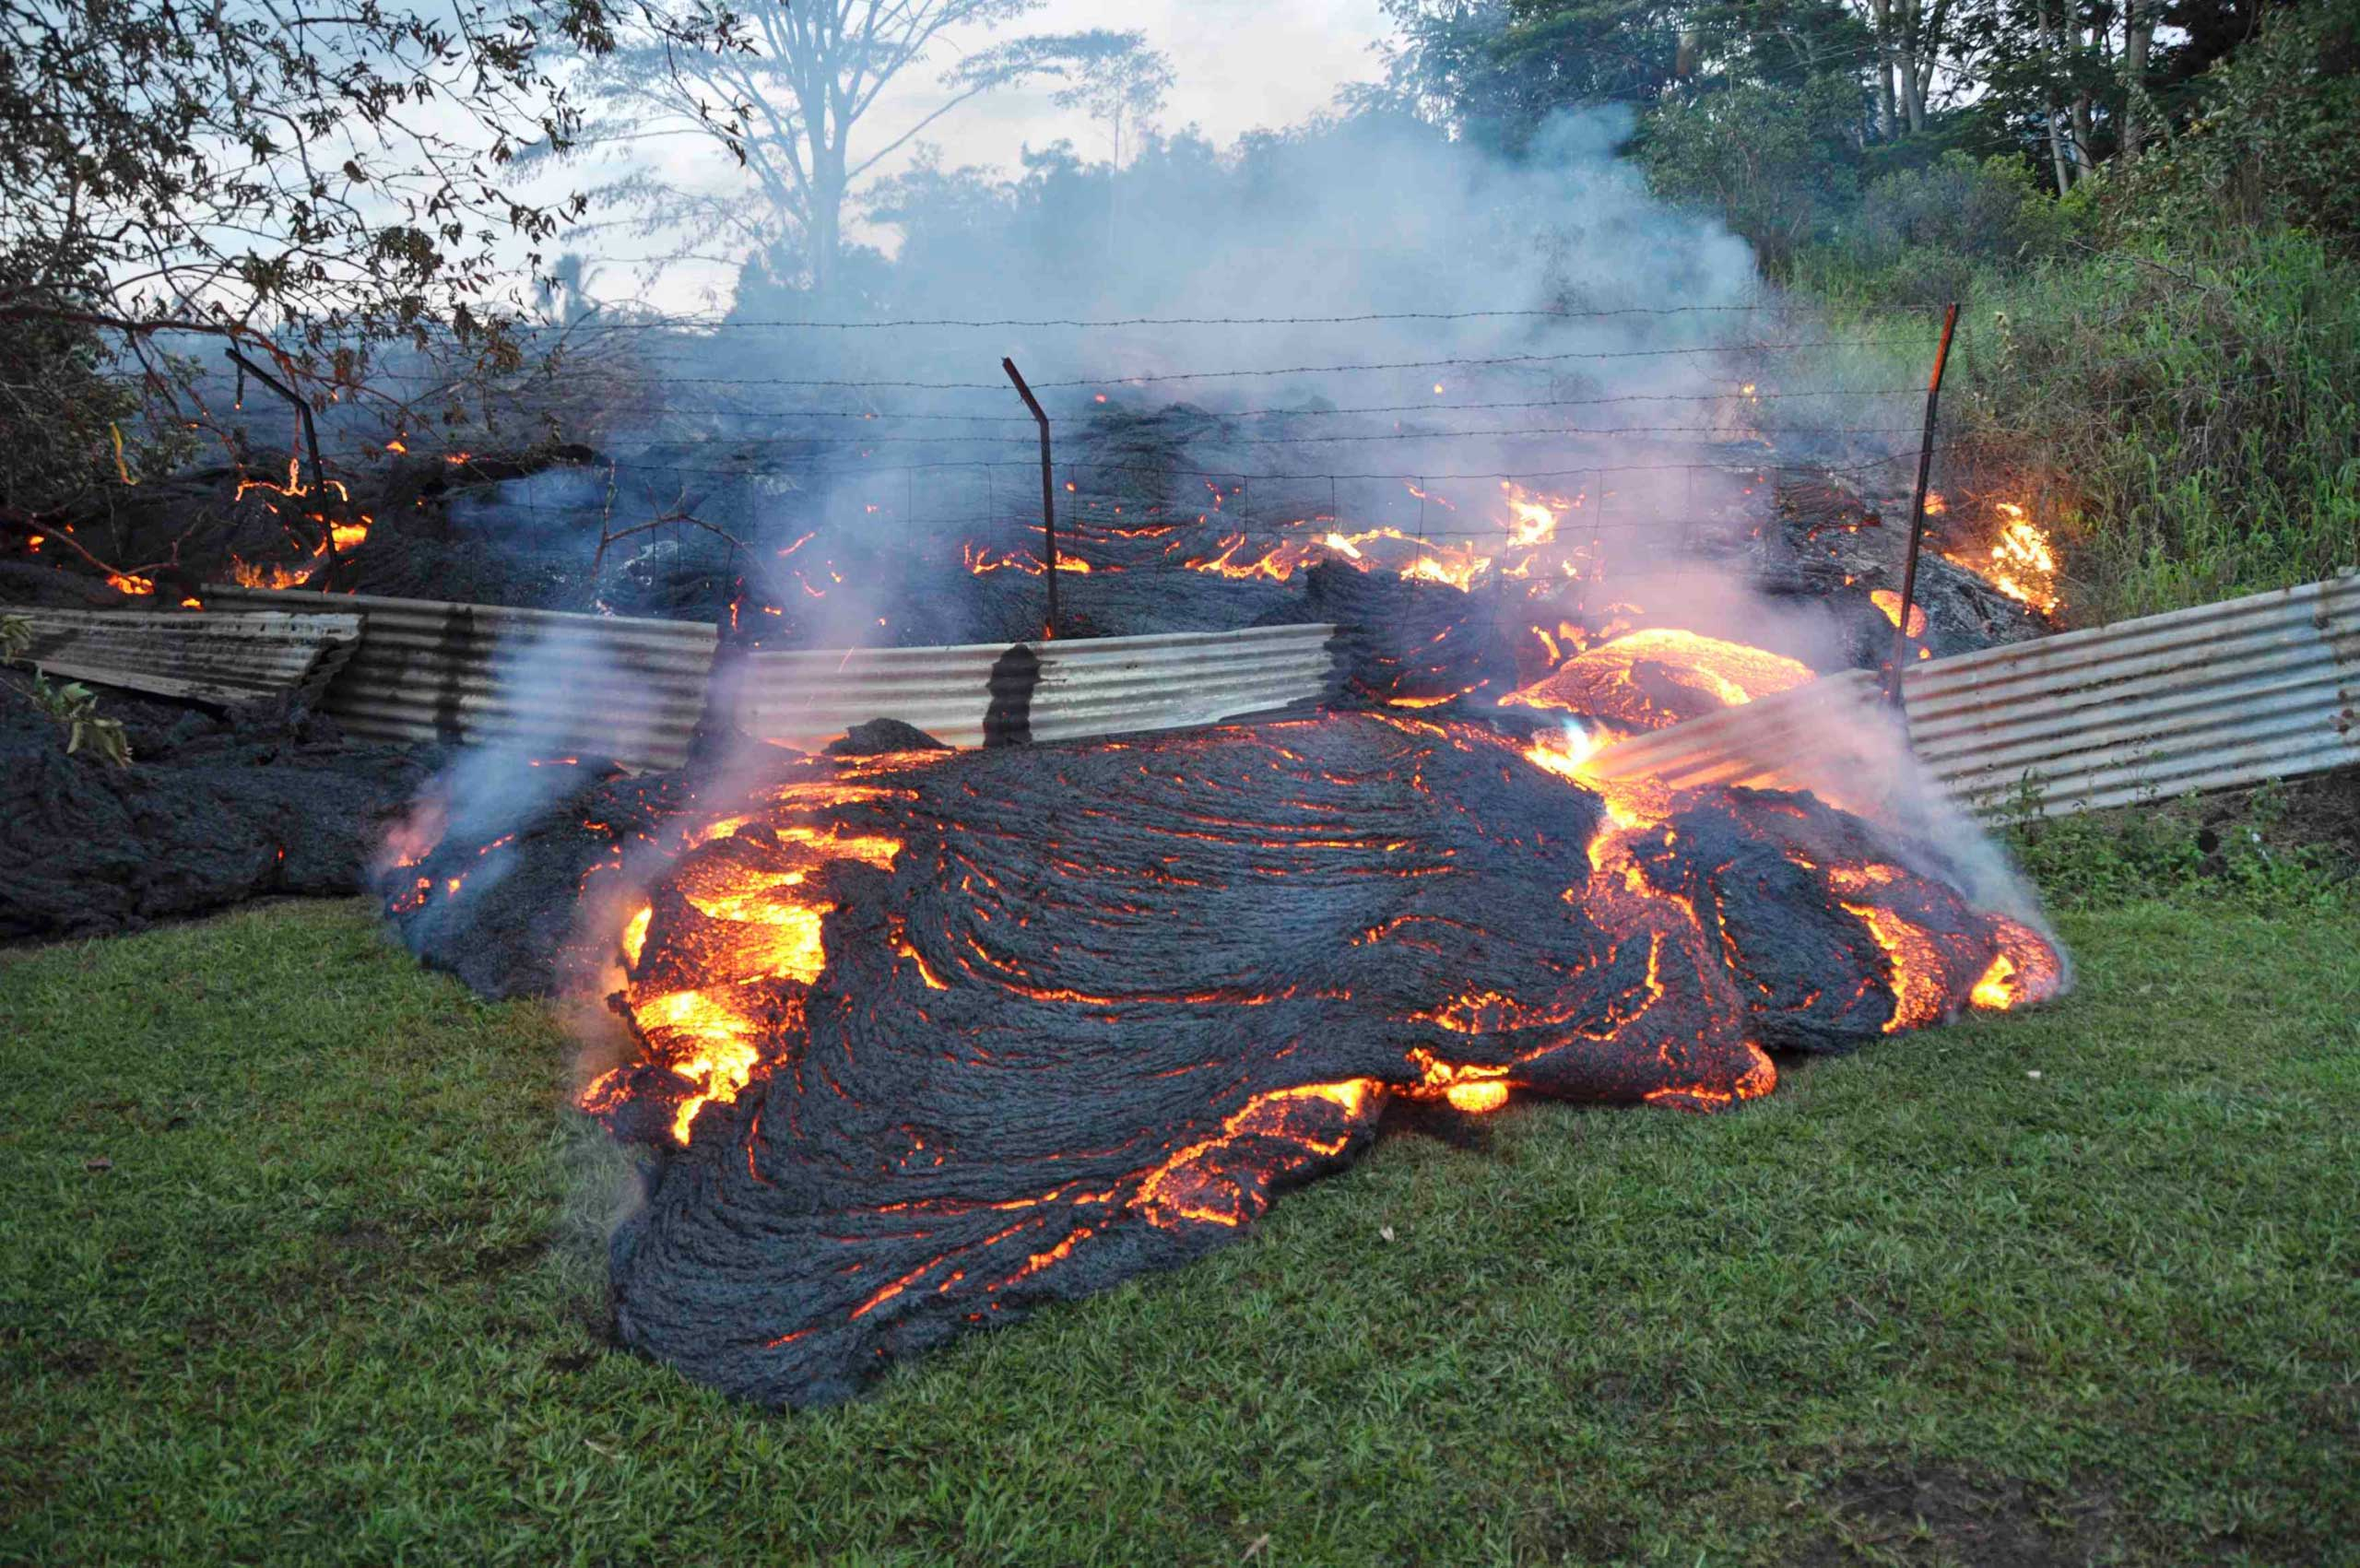 The lava flow from the Kilauea Volcano burns vegetation as it approaches a property boundary near the village of Pahoa, Hawaii, on Oct. 28, 2014.